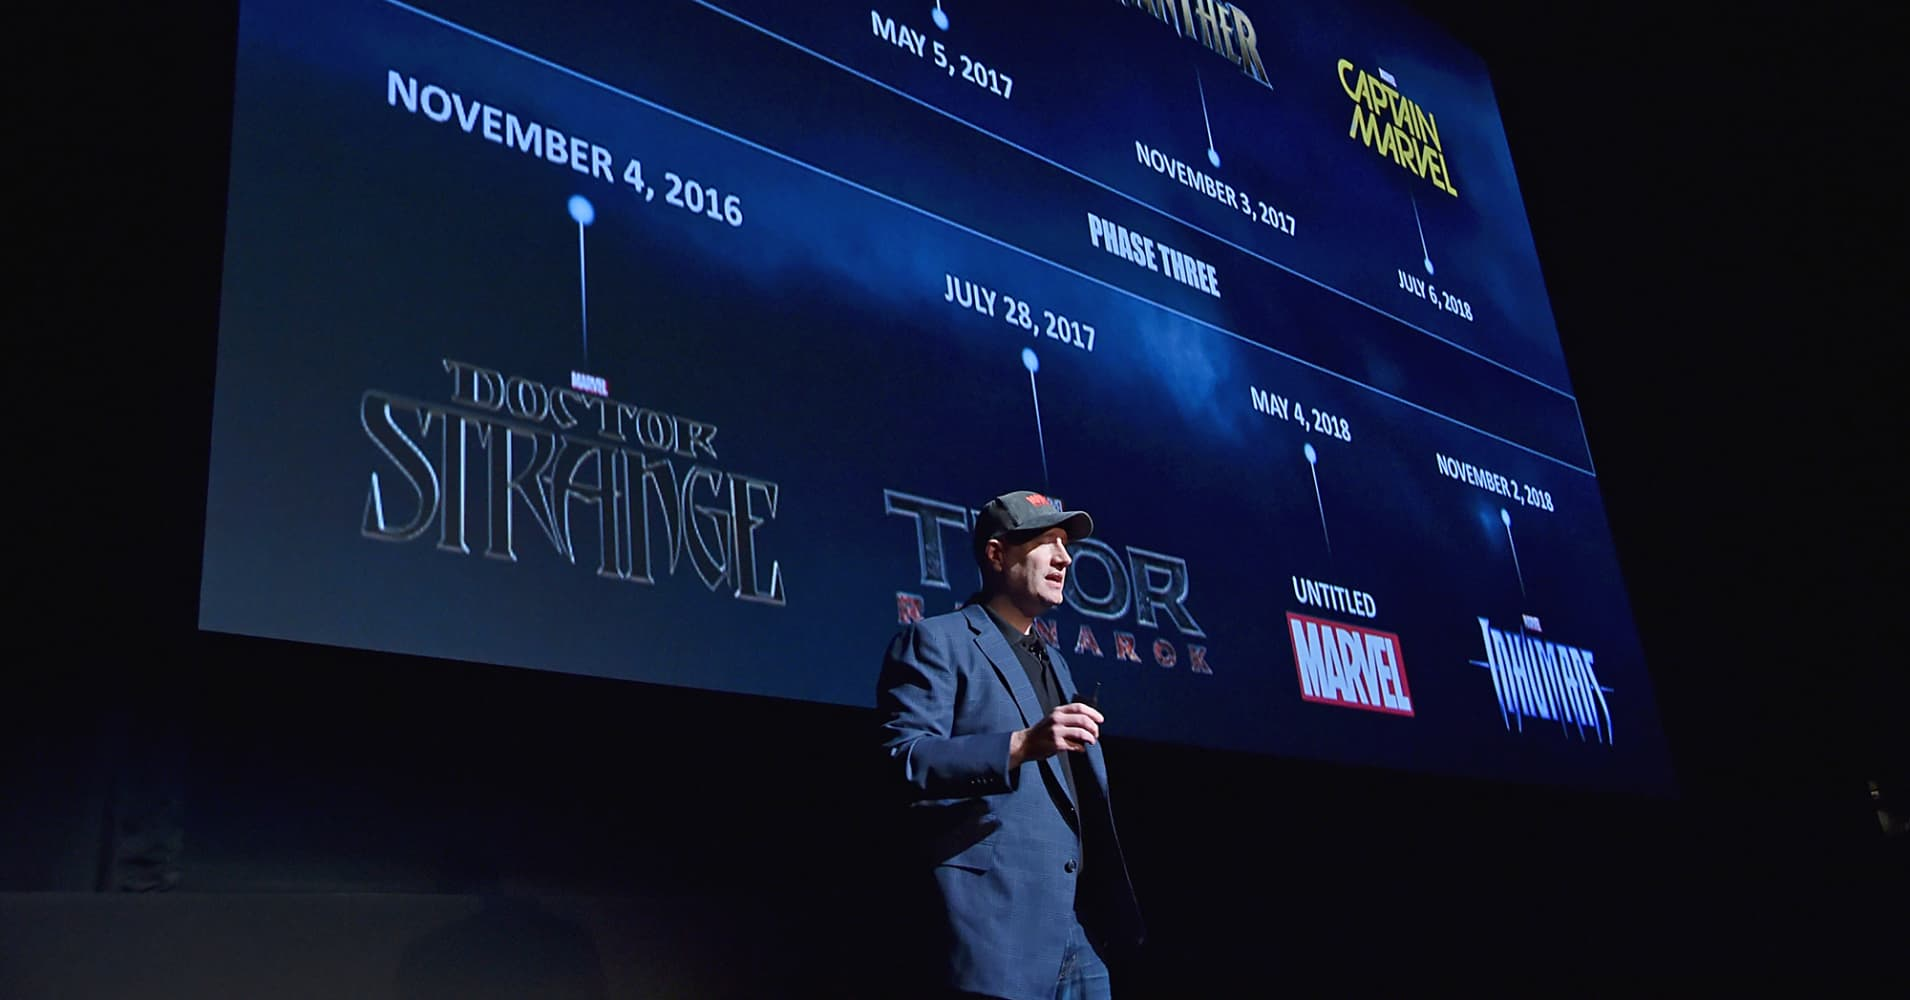 Marvel Studios president Kevin Feige speaks during a fan event at in Los Angeles, Oct. 28, 2014.